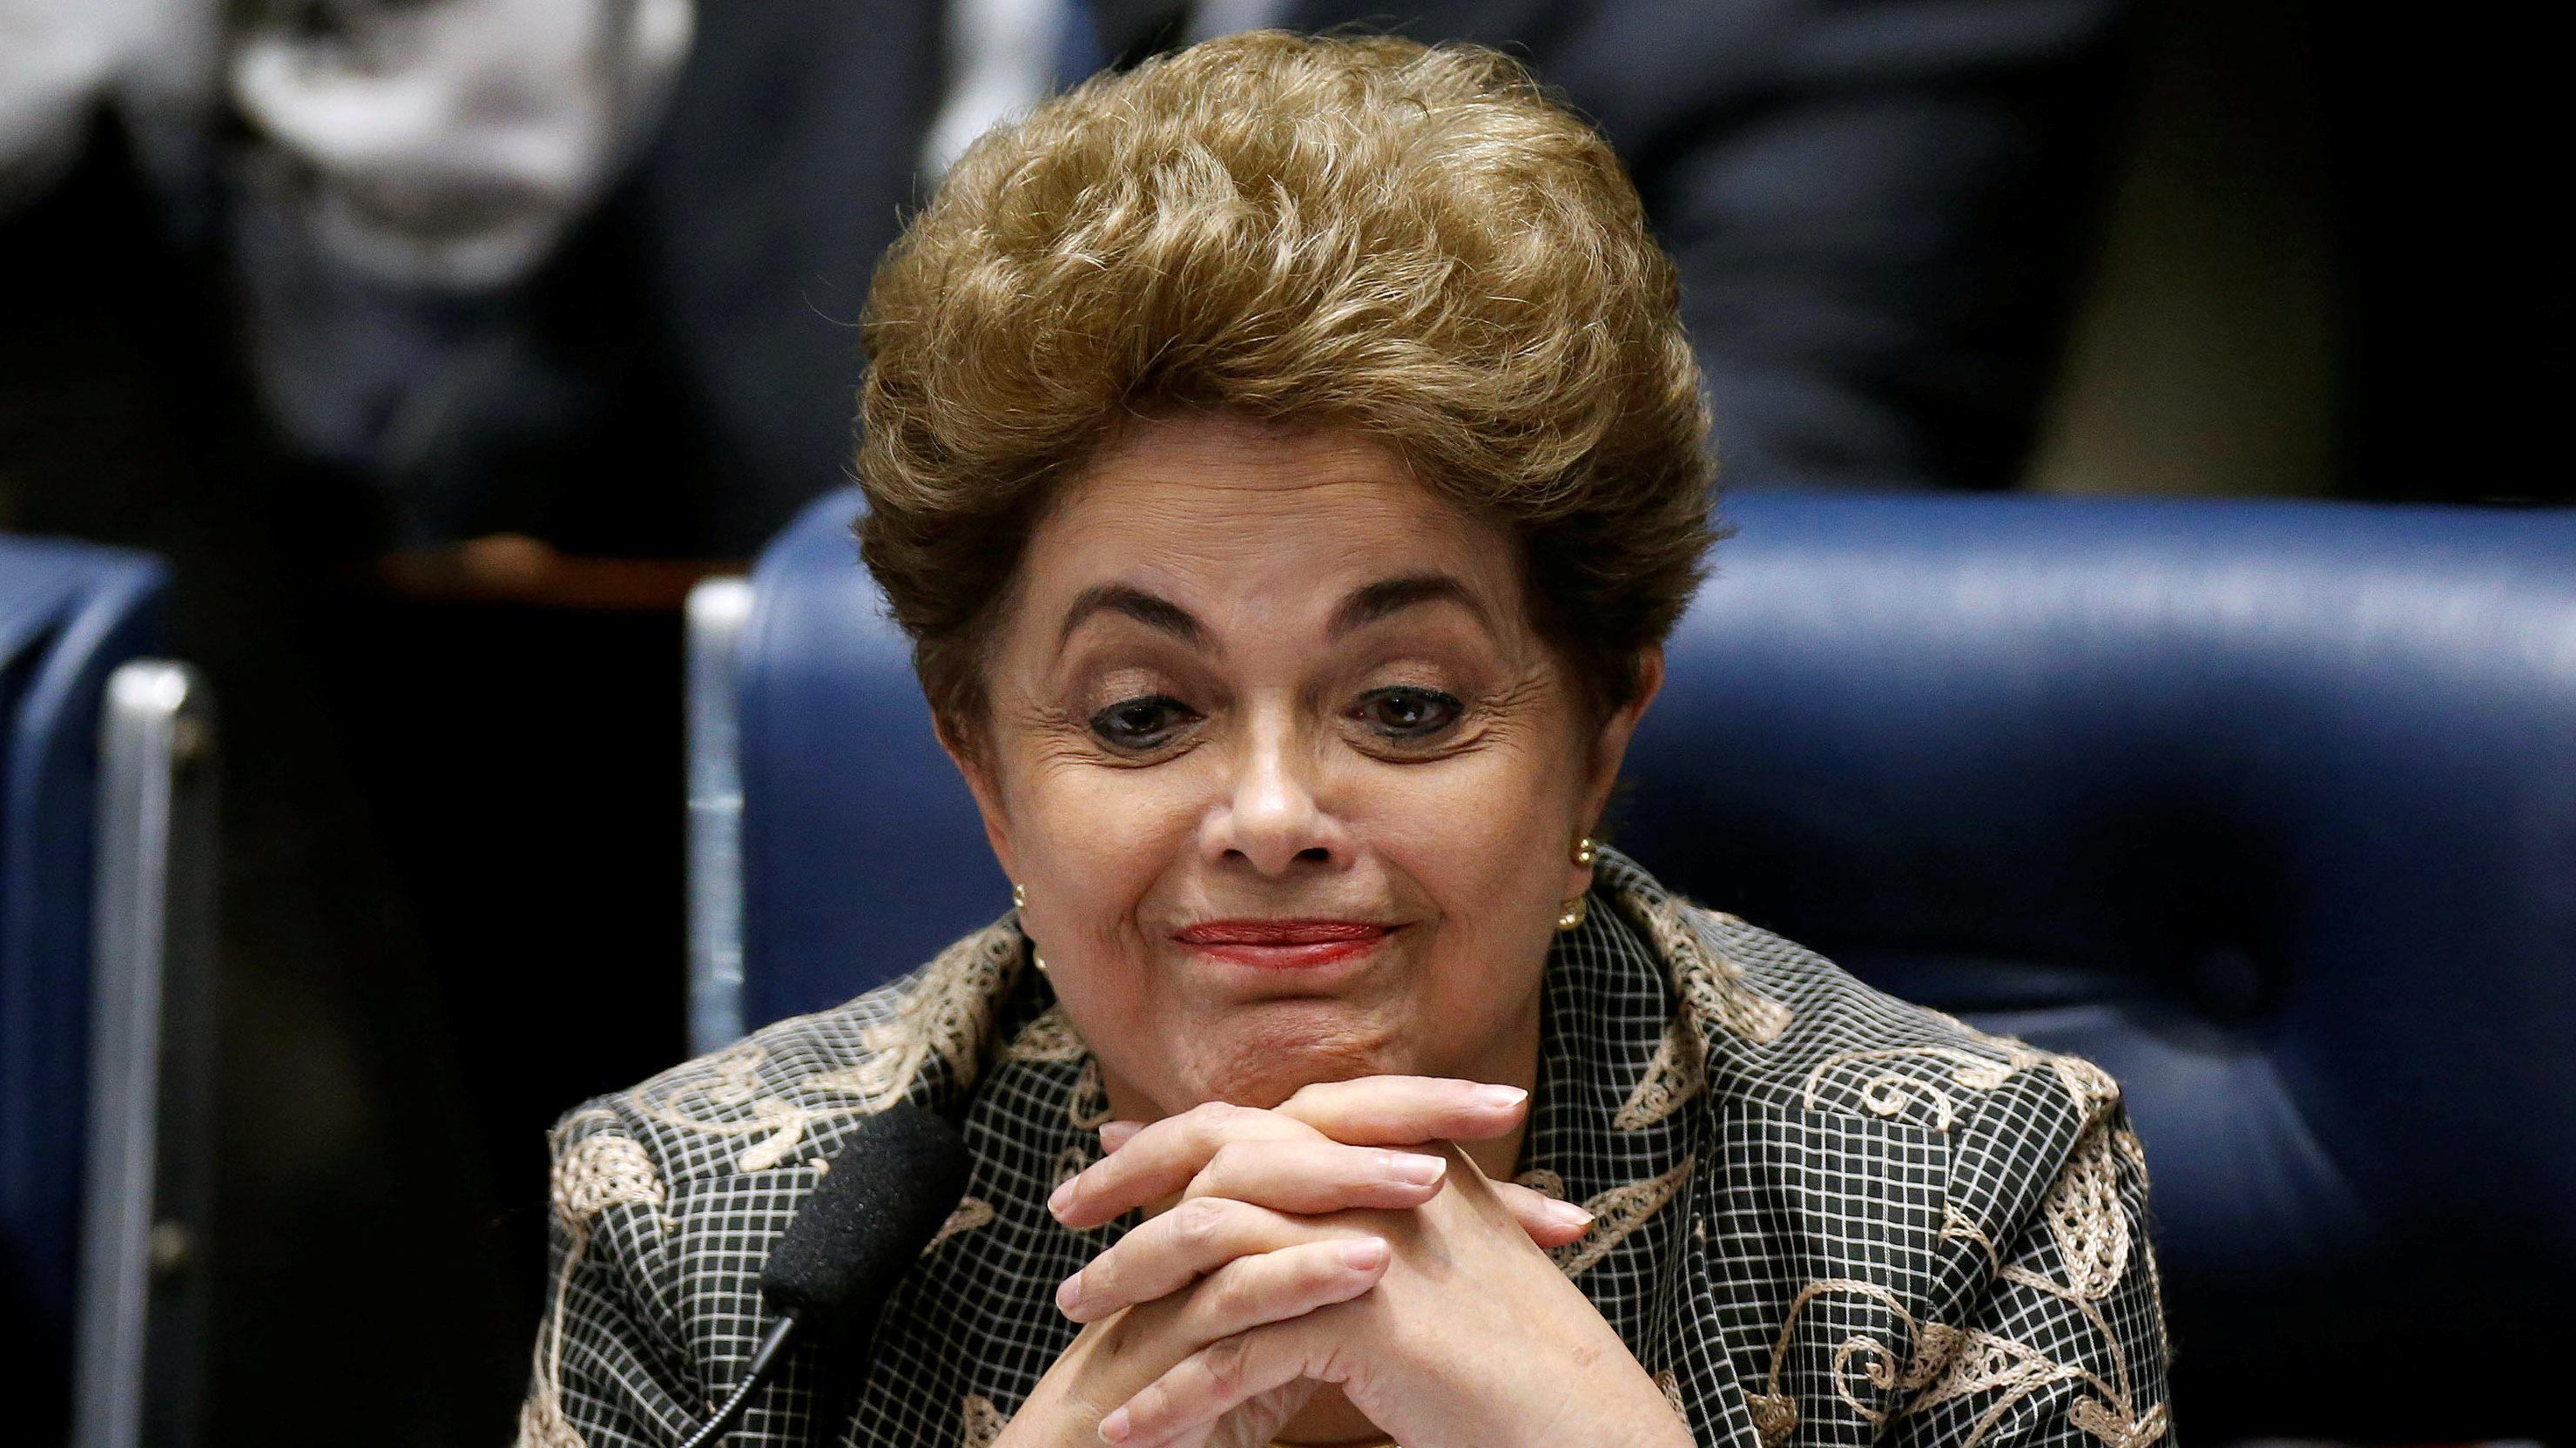 Brazil's suspended President Dilma Rousseff attends the final session of debate and voting on Rousseff's impeachment trial in Brasilia, Brazil, August 29, 2016. REUTERS/Ueslei Marcelino - RTX2NIJF